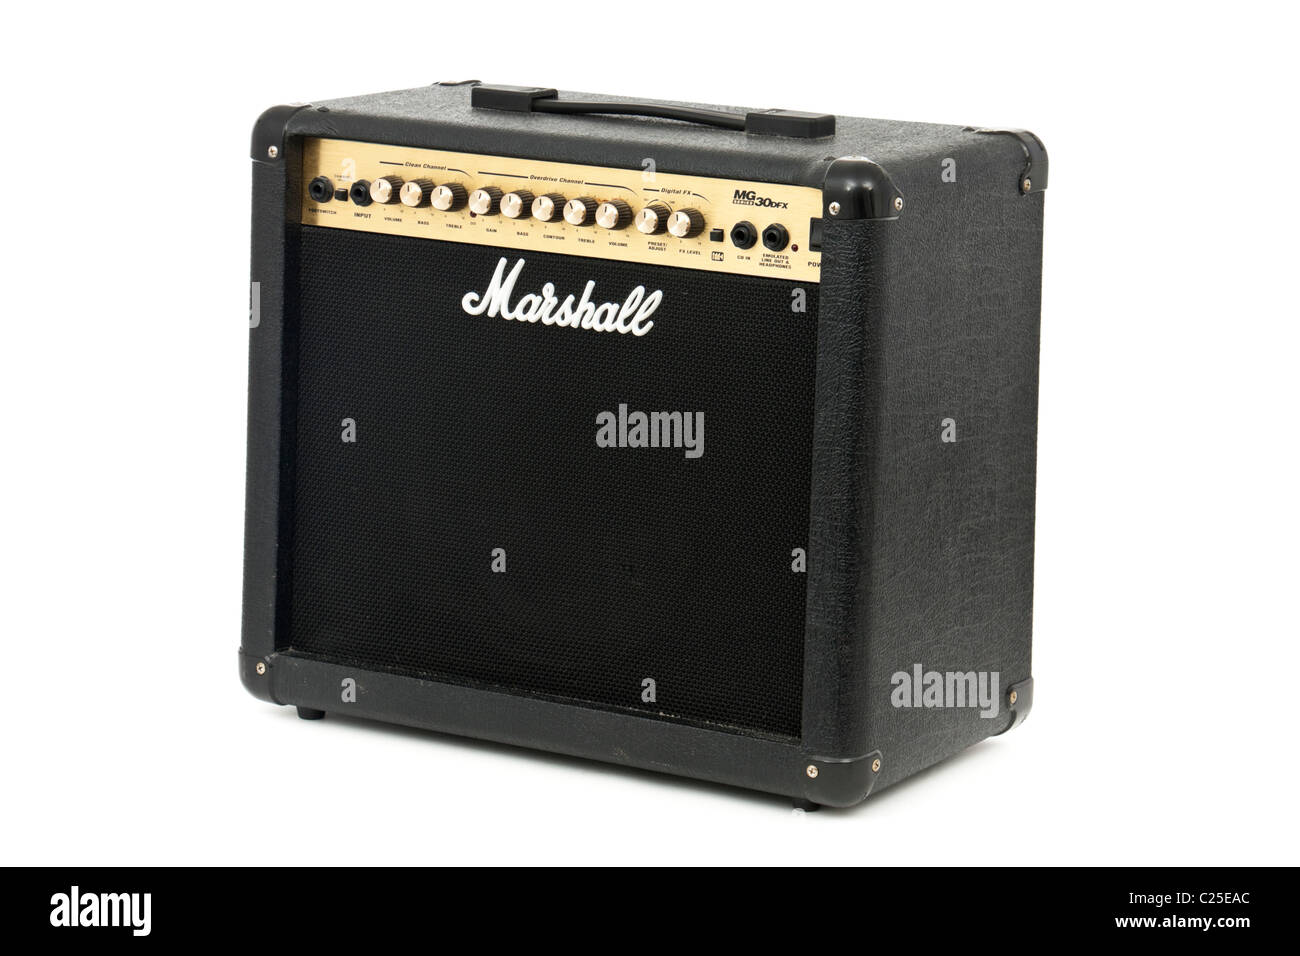 Marshall MG-series 30DFX electric guitar amplifier - Stock Image